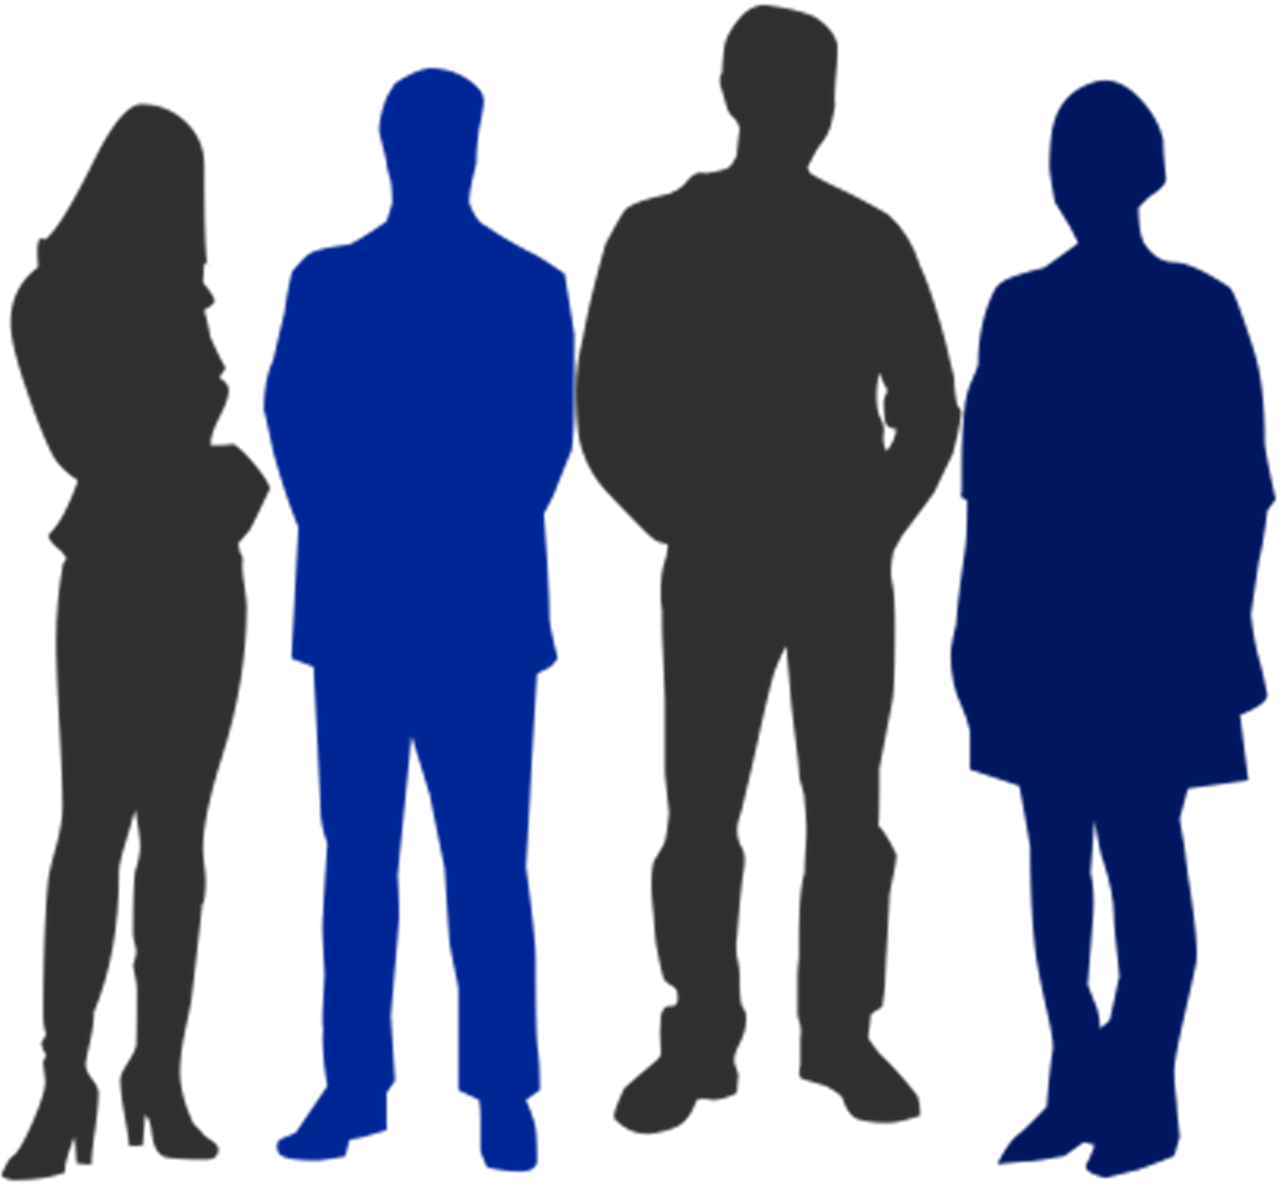 small team and group paper People in every workplace talk about building the team, but few understand how to create the experience of teamwork or how to develop an effective teambelonging to a team, in the broadest sense, is a result of feeling part of something larger than yourself.